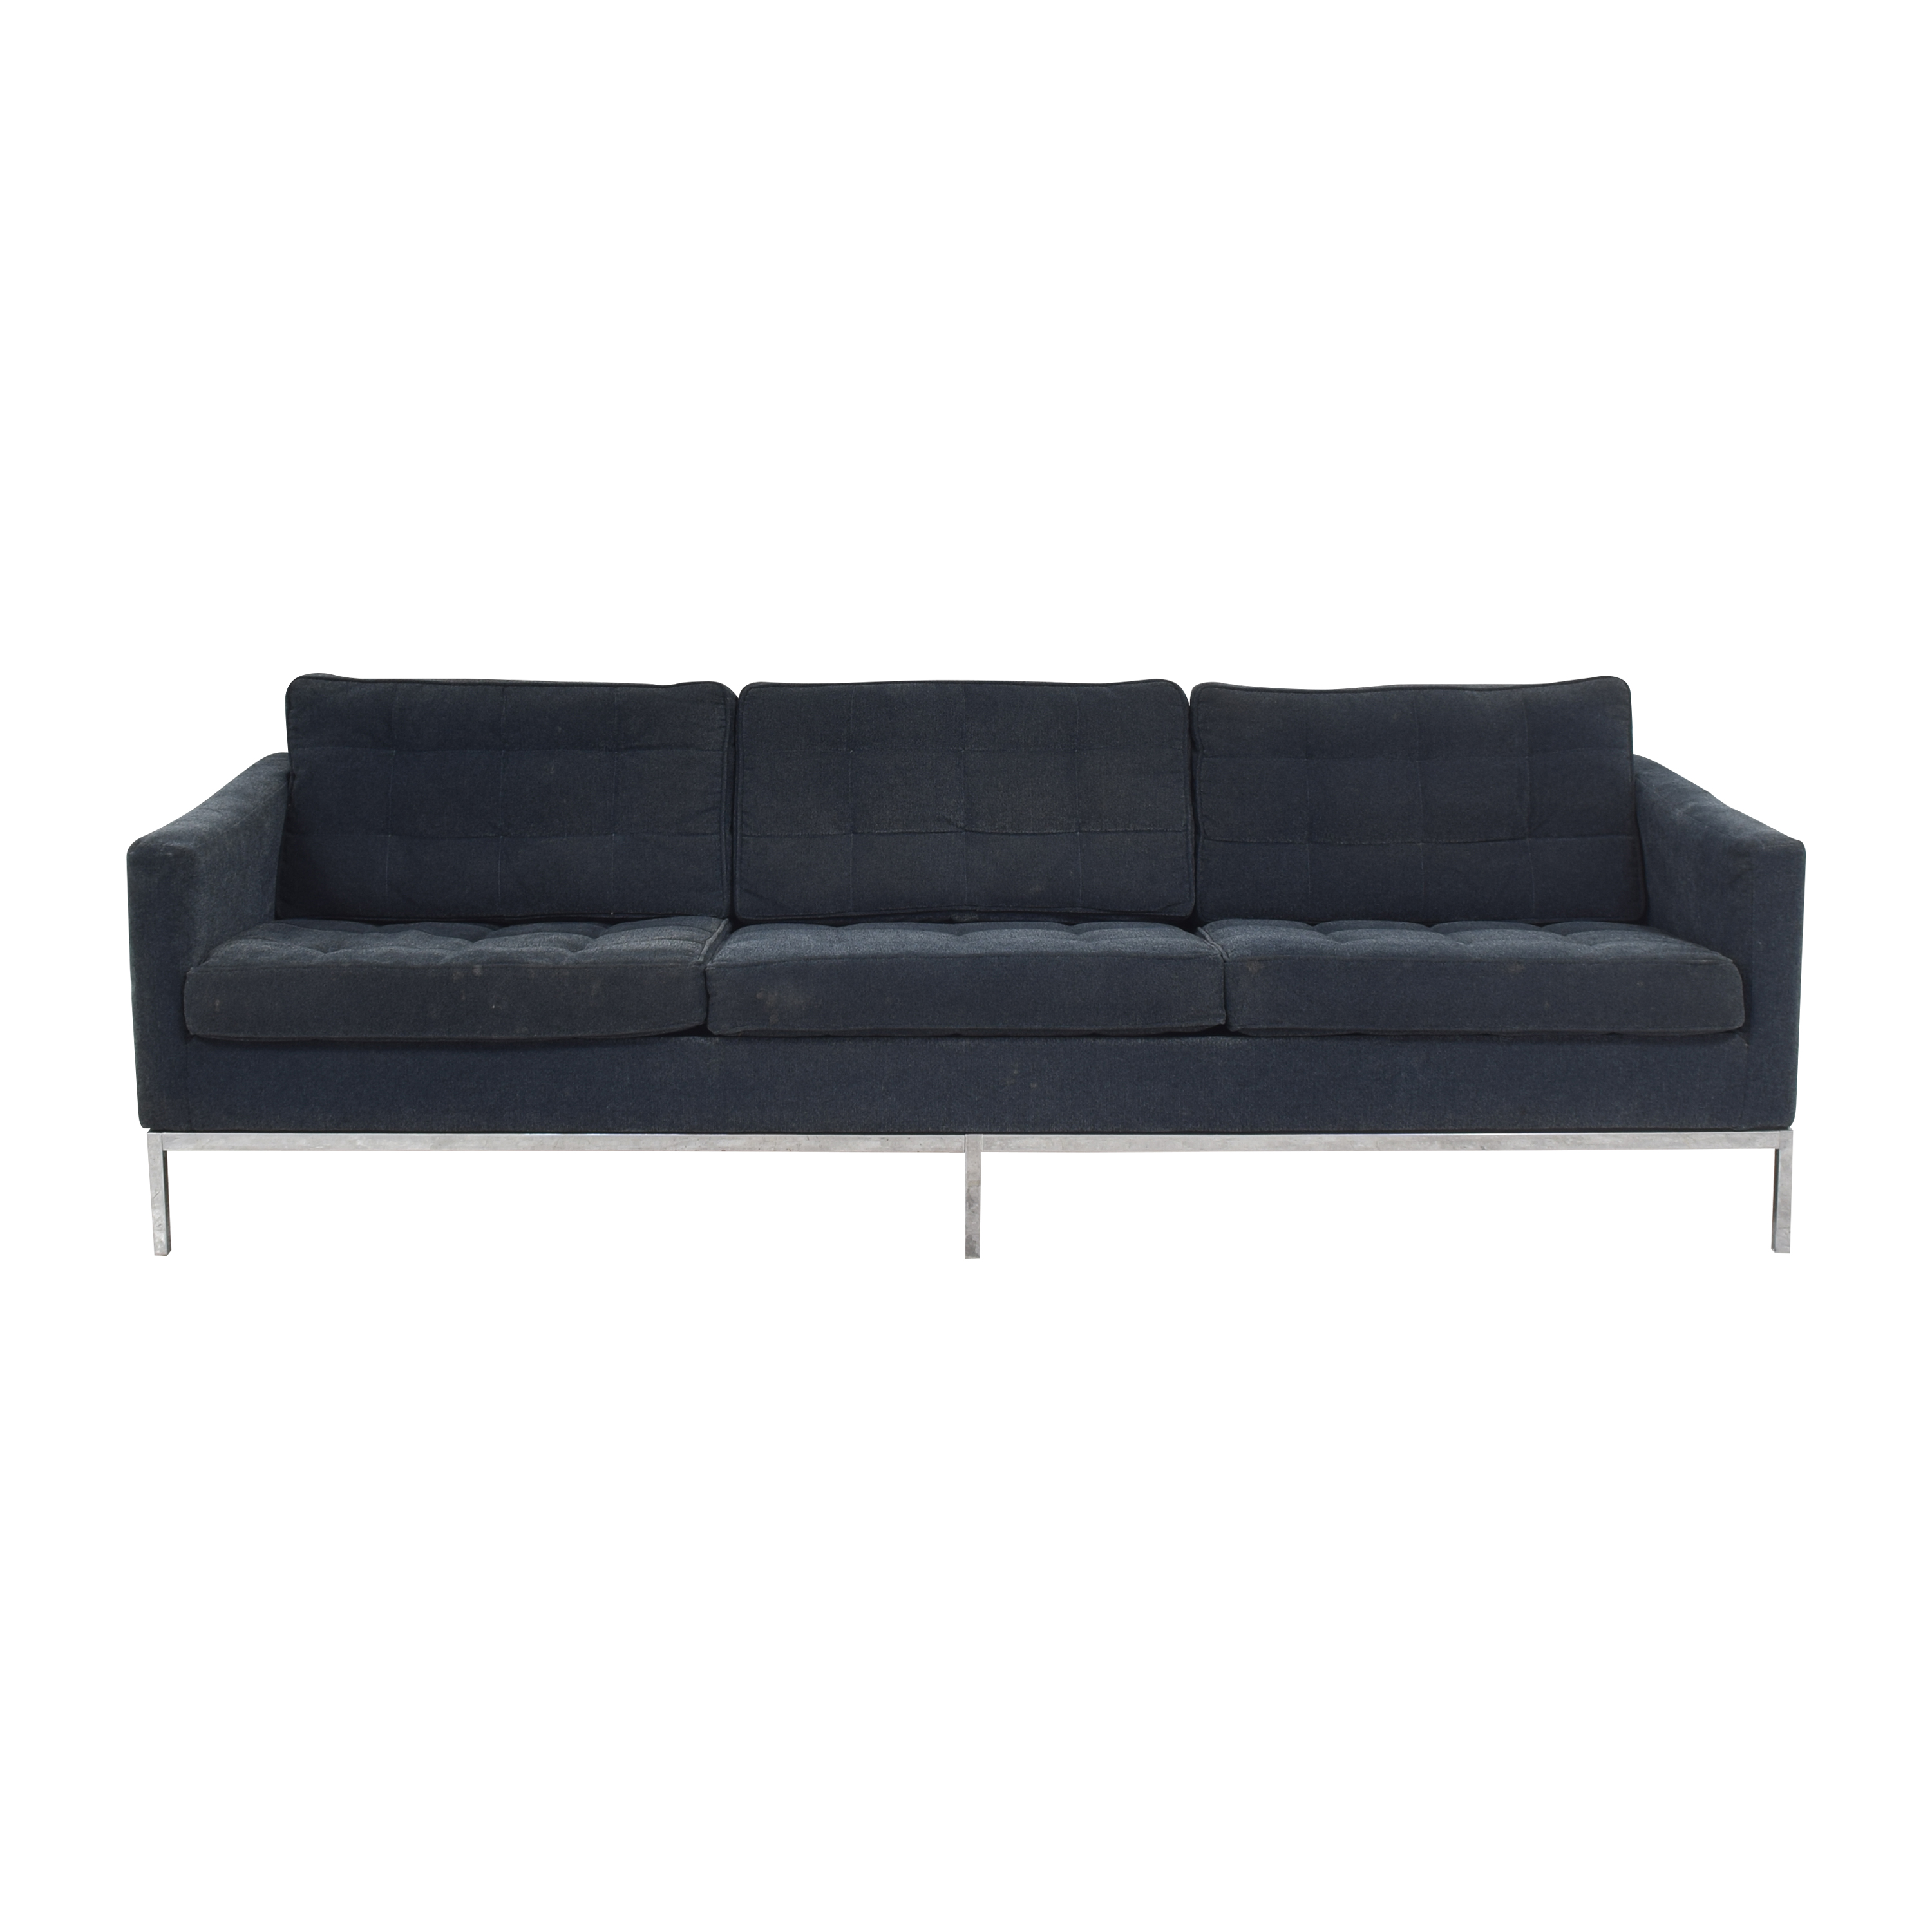 Knoll Knoll Florence Knoll Sofa for sale